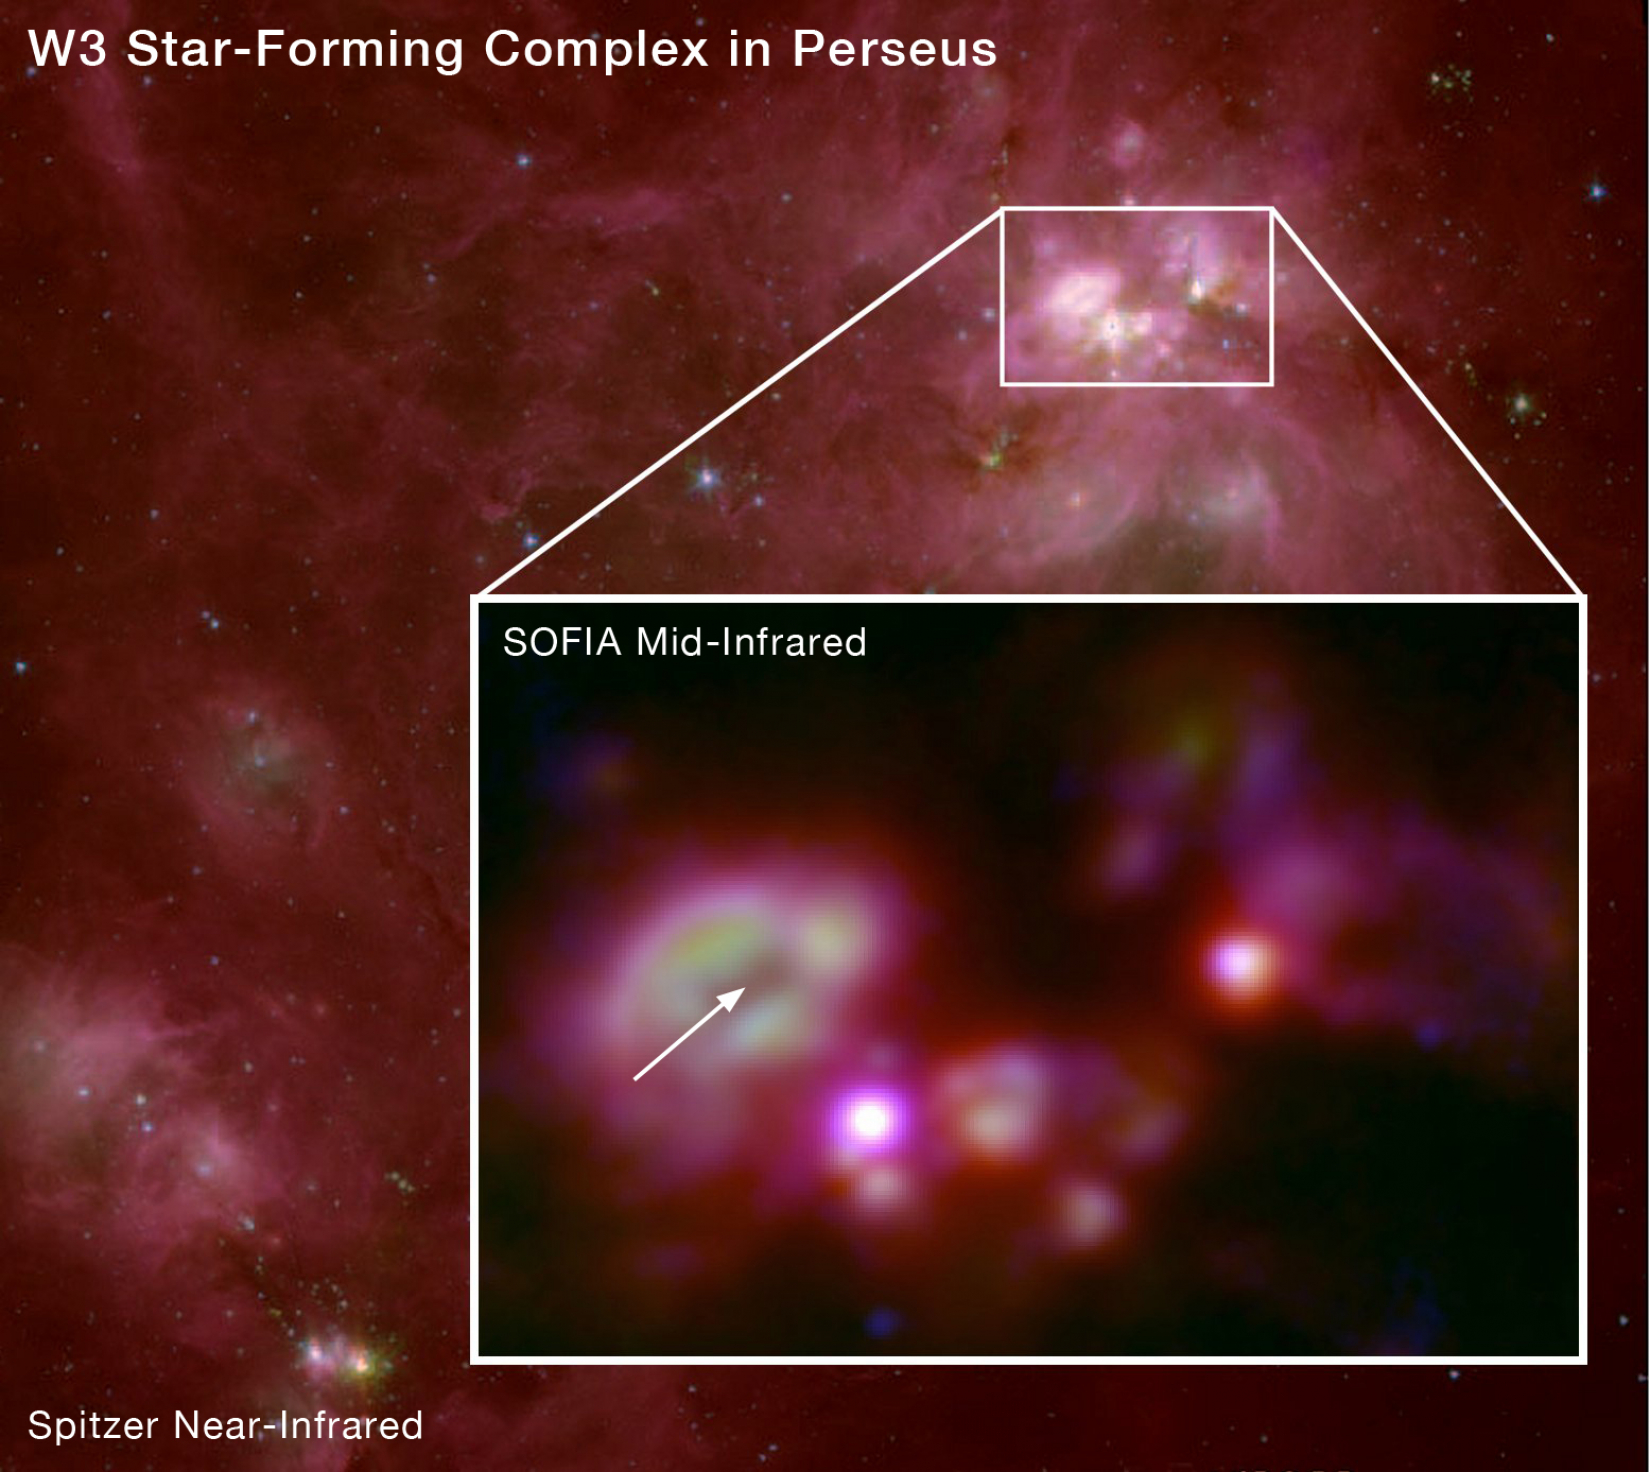 W3 Star-Forming Complex in Perseus